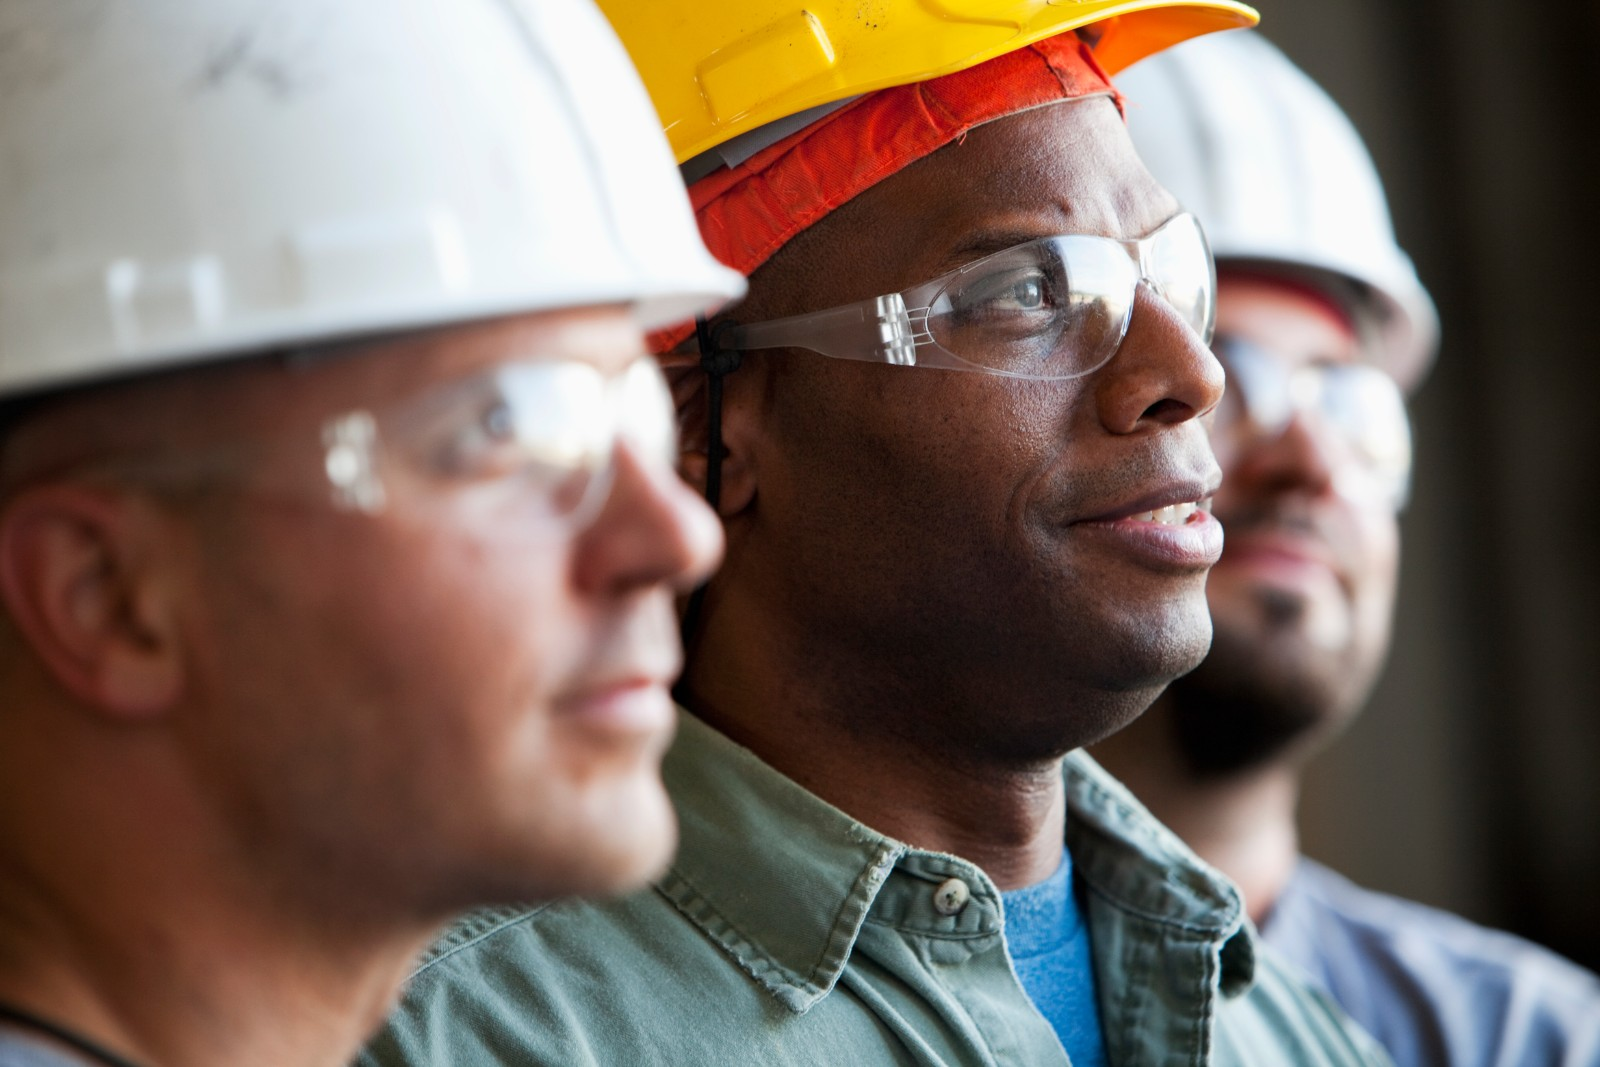 Close up of group of multi-ethnic construction workers wearing hard hats and safety glasses. Focus on African American man (30s).